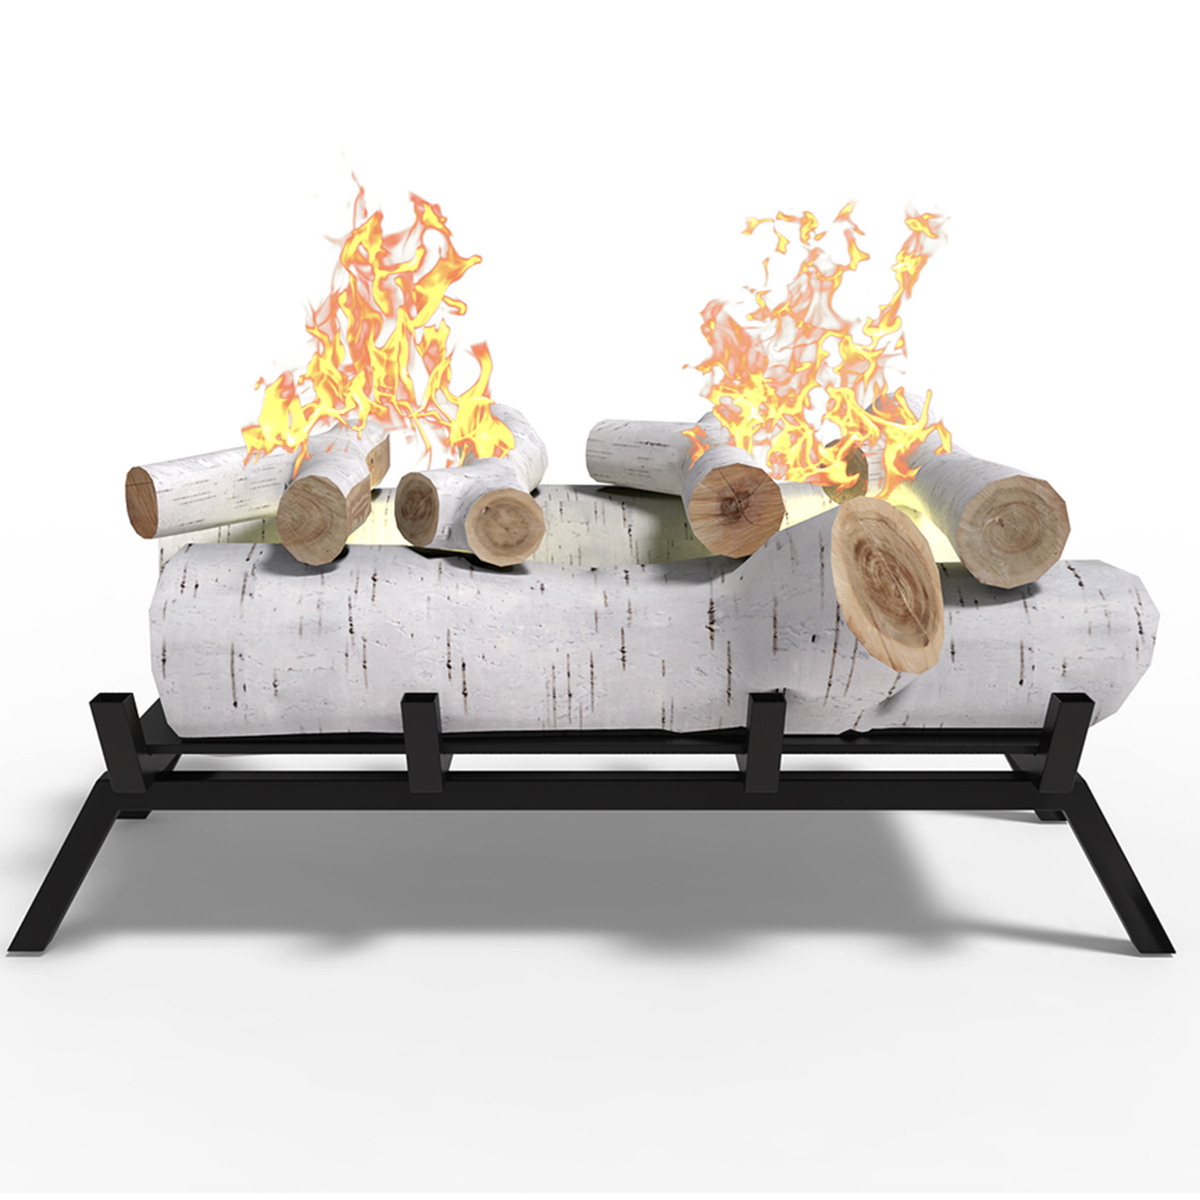 18 In Birch Convert Gas Gel Or Electric To Ethanol Fireplace Log Set